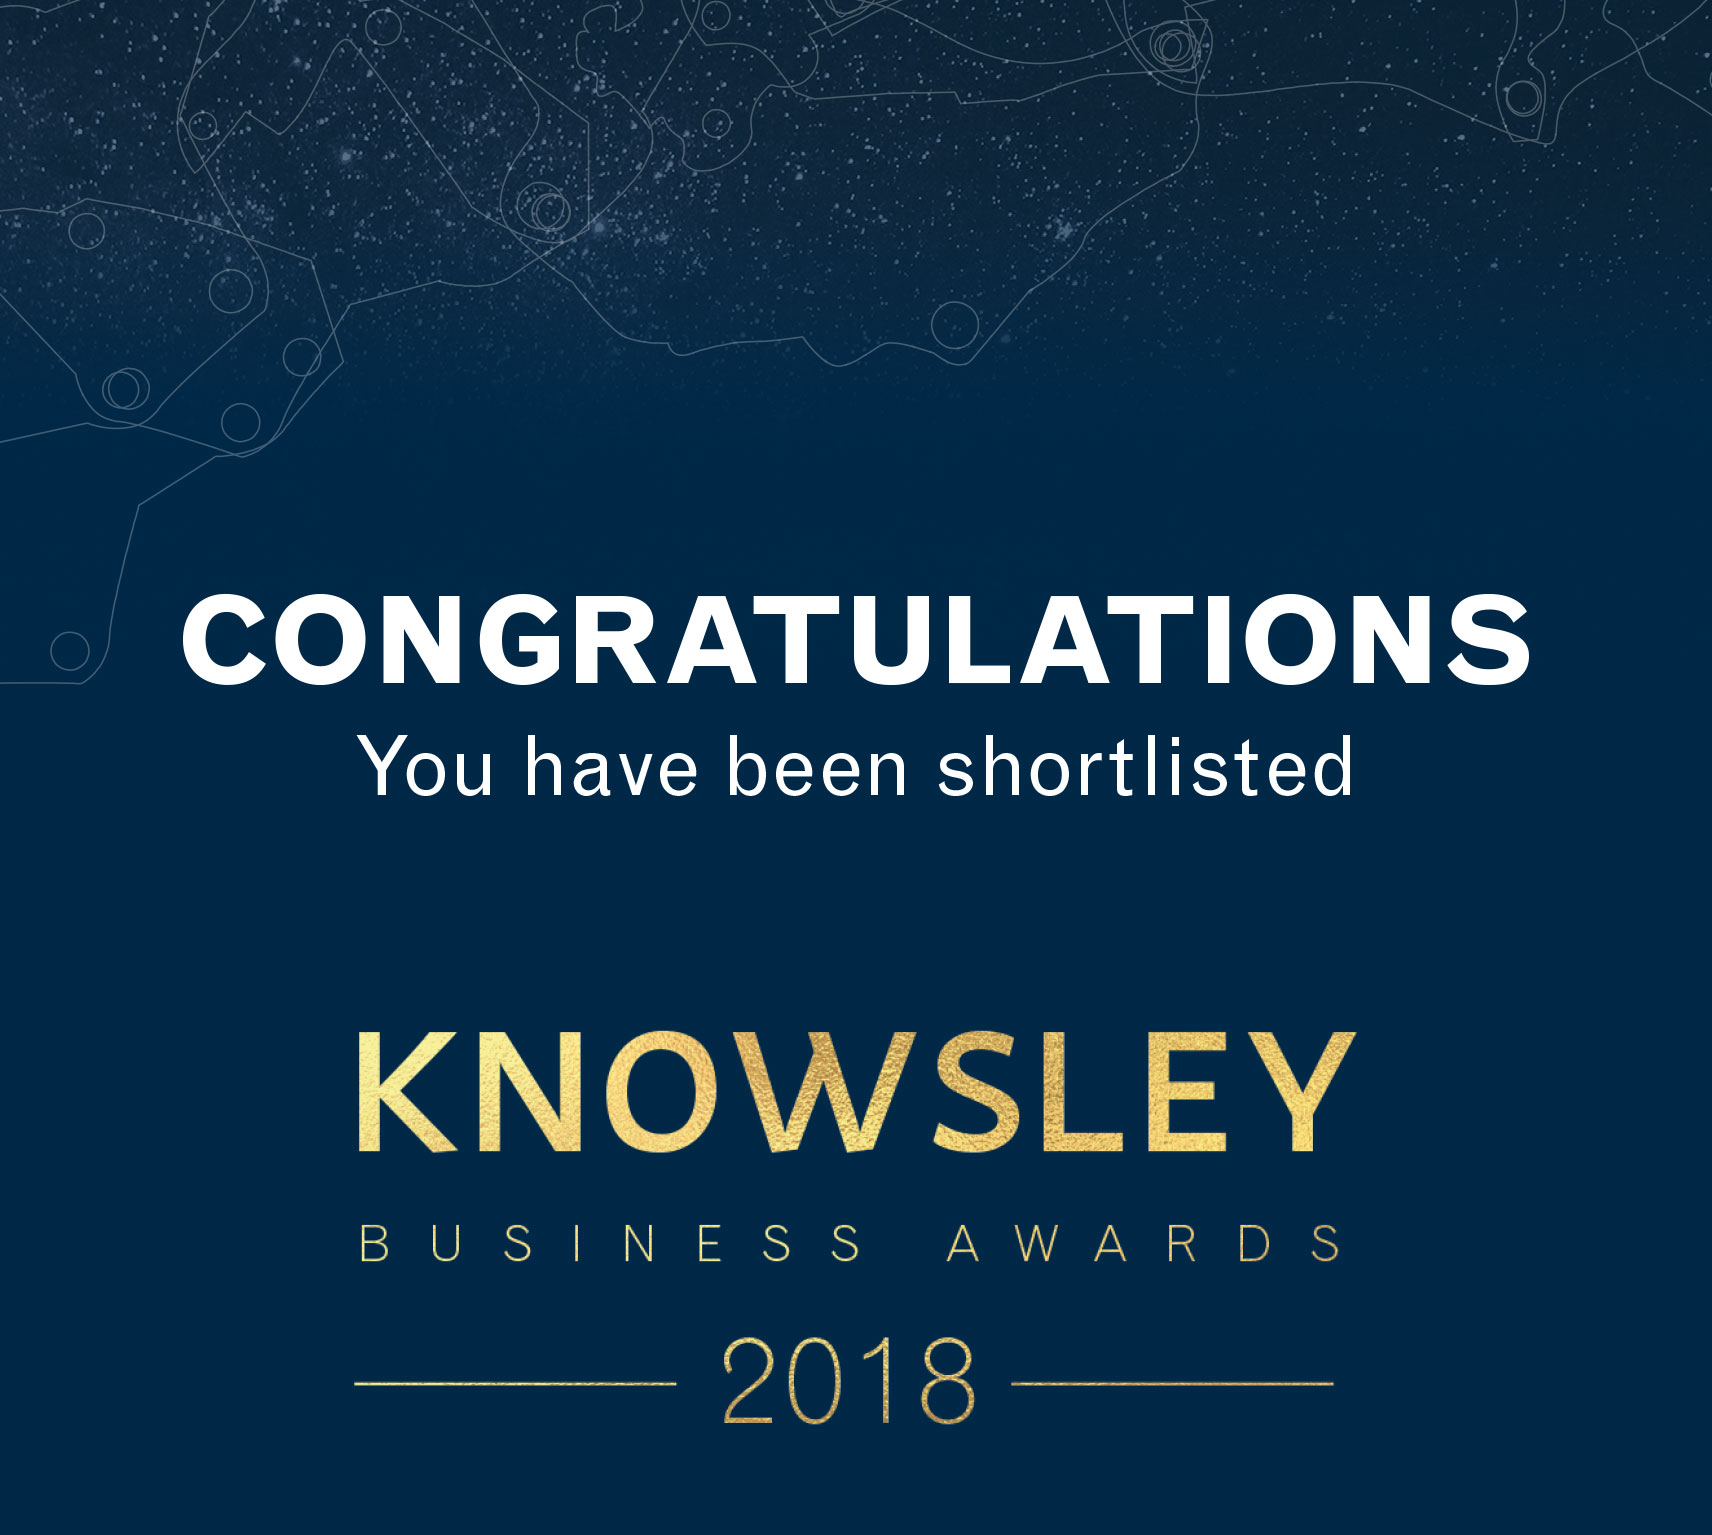 Knowsley Business Awards 2018